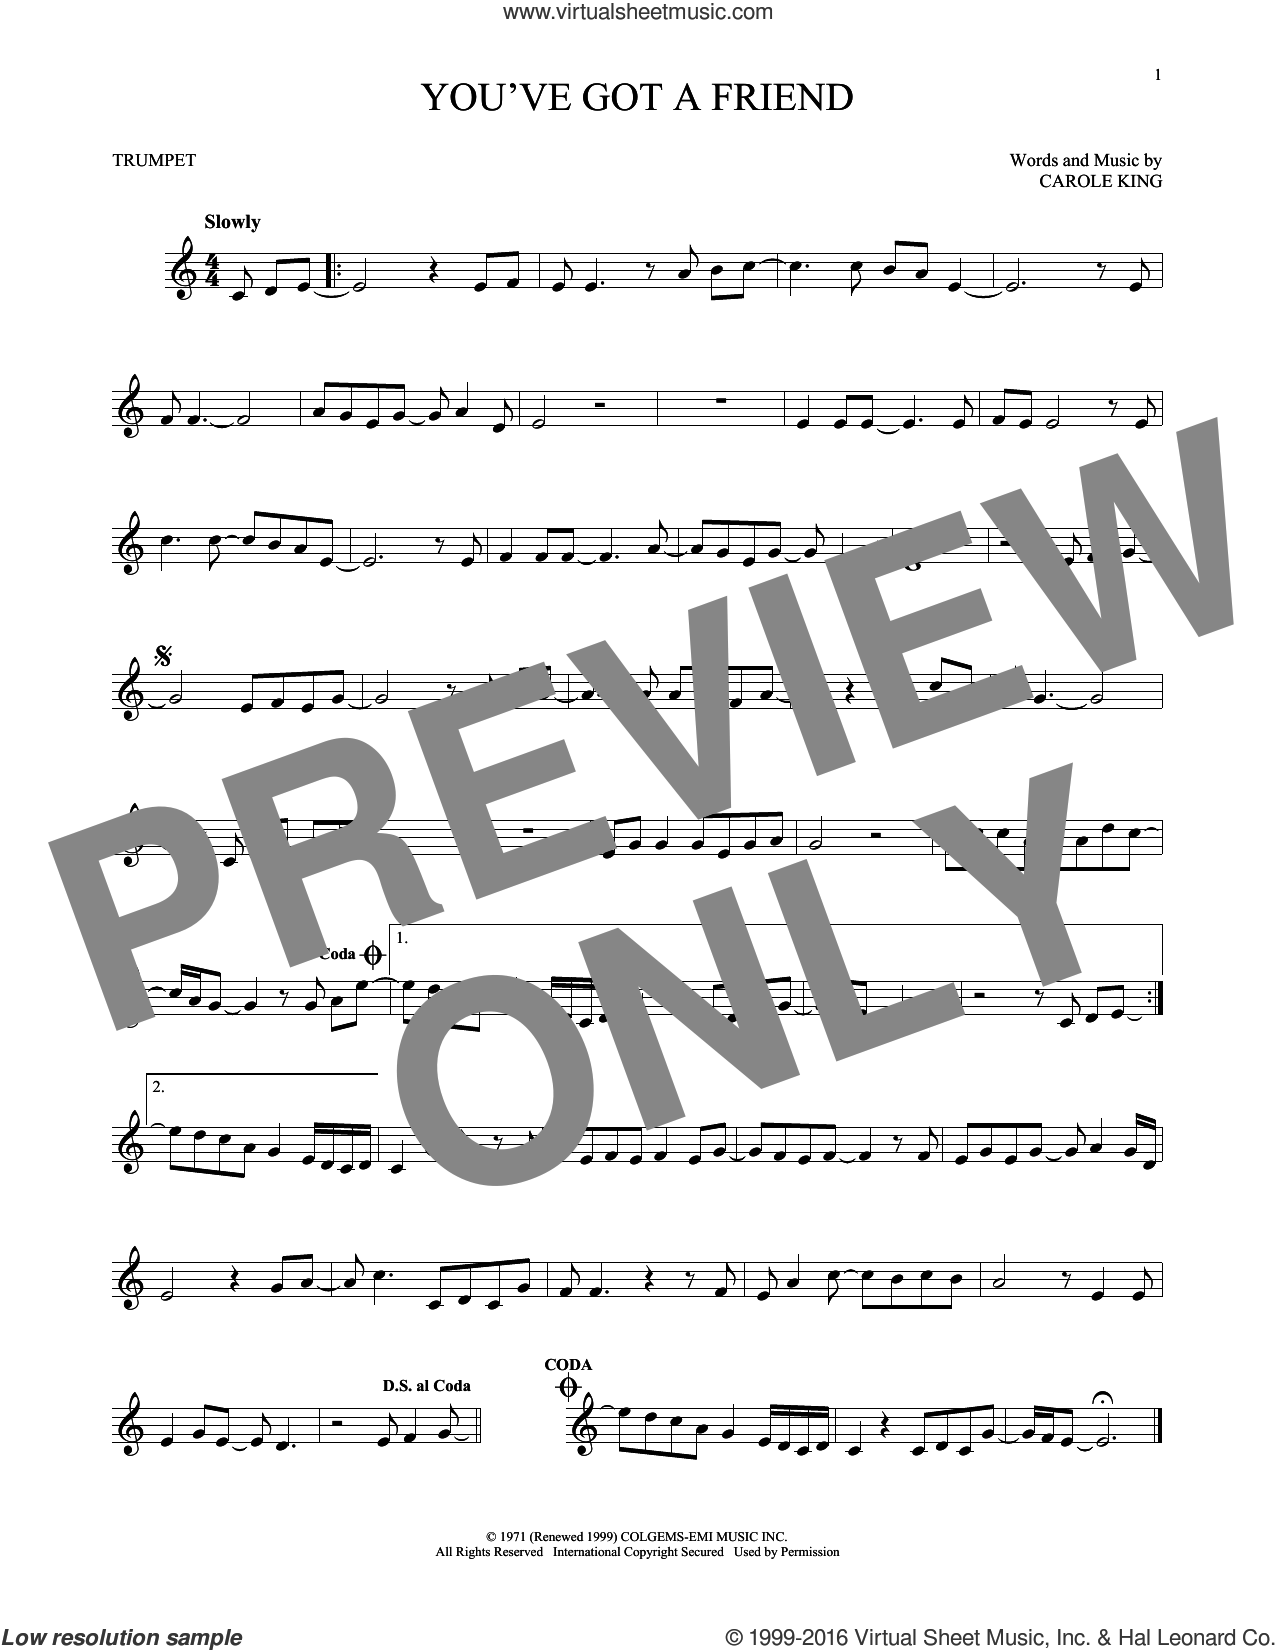 You've Got A Friend sheet music for trumpet solo by James Taylor and Carole King, intermediate skill level